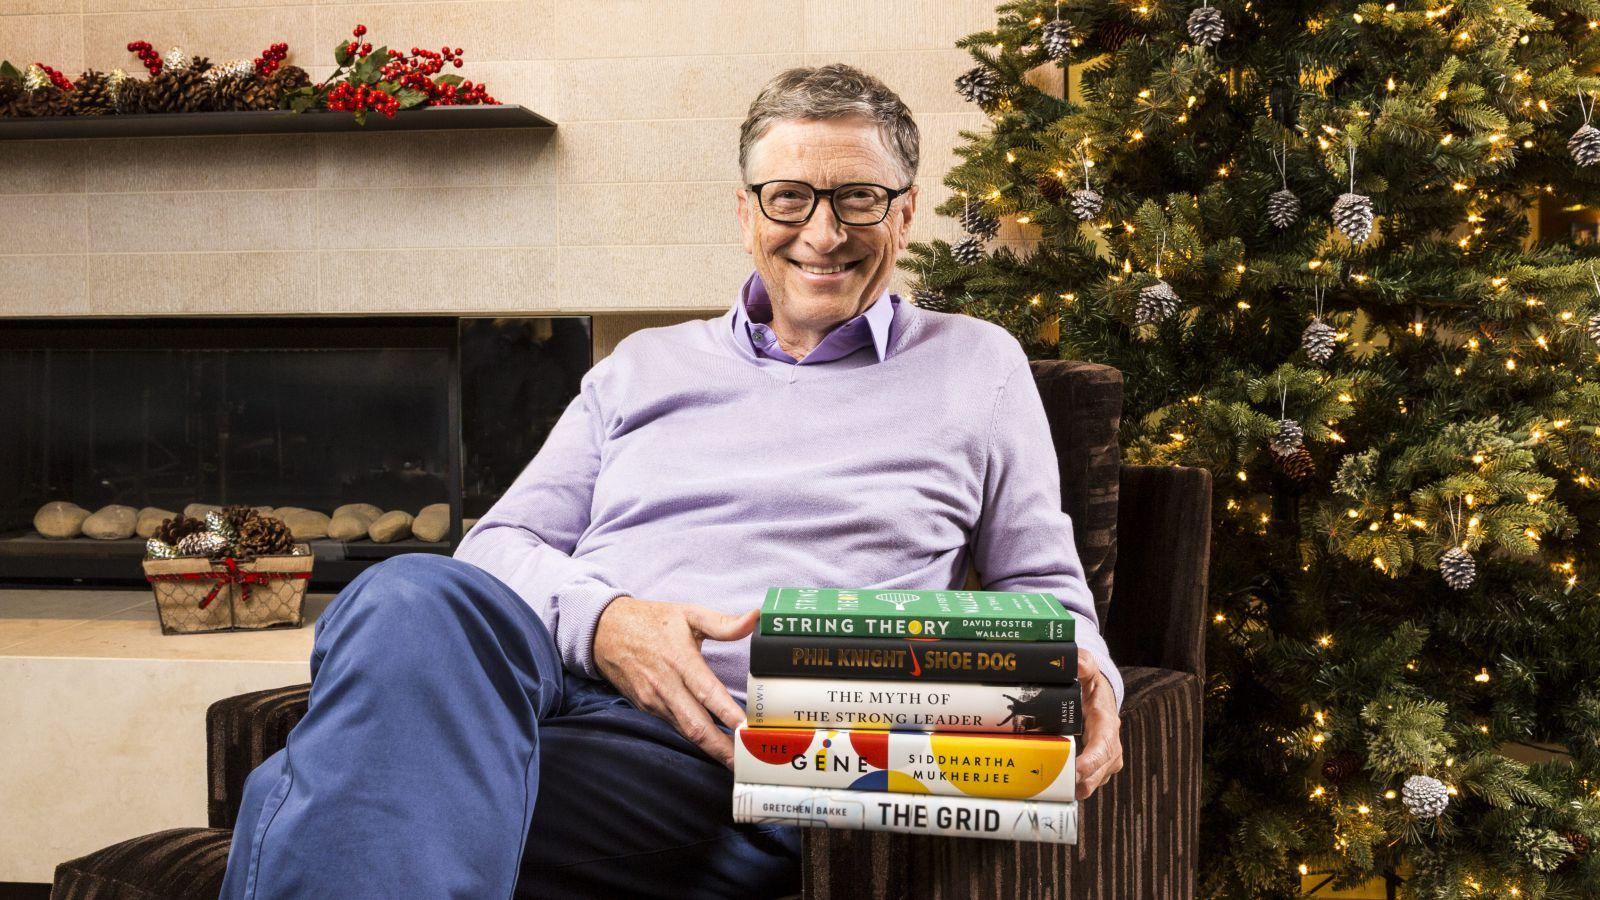 Bill Gates with the book Shoe Dog